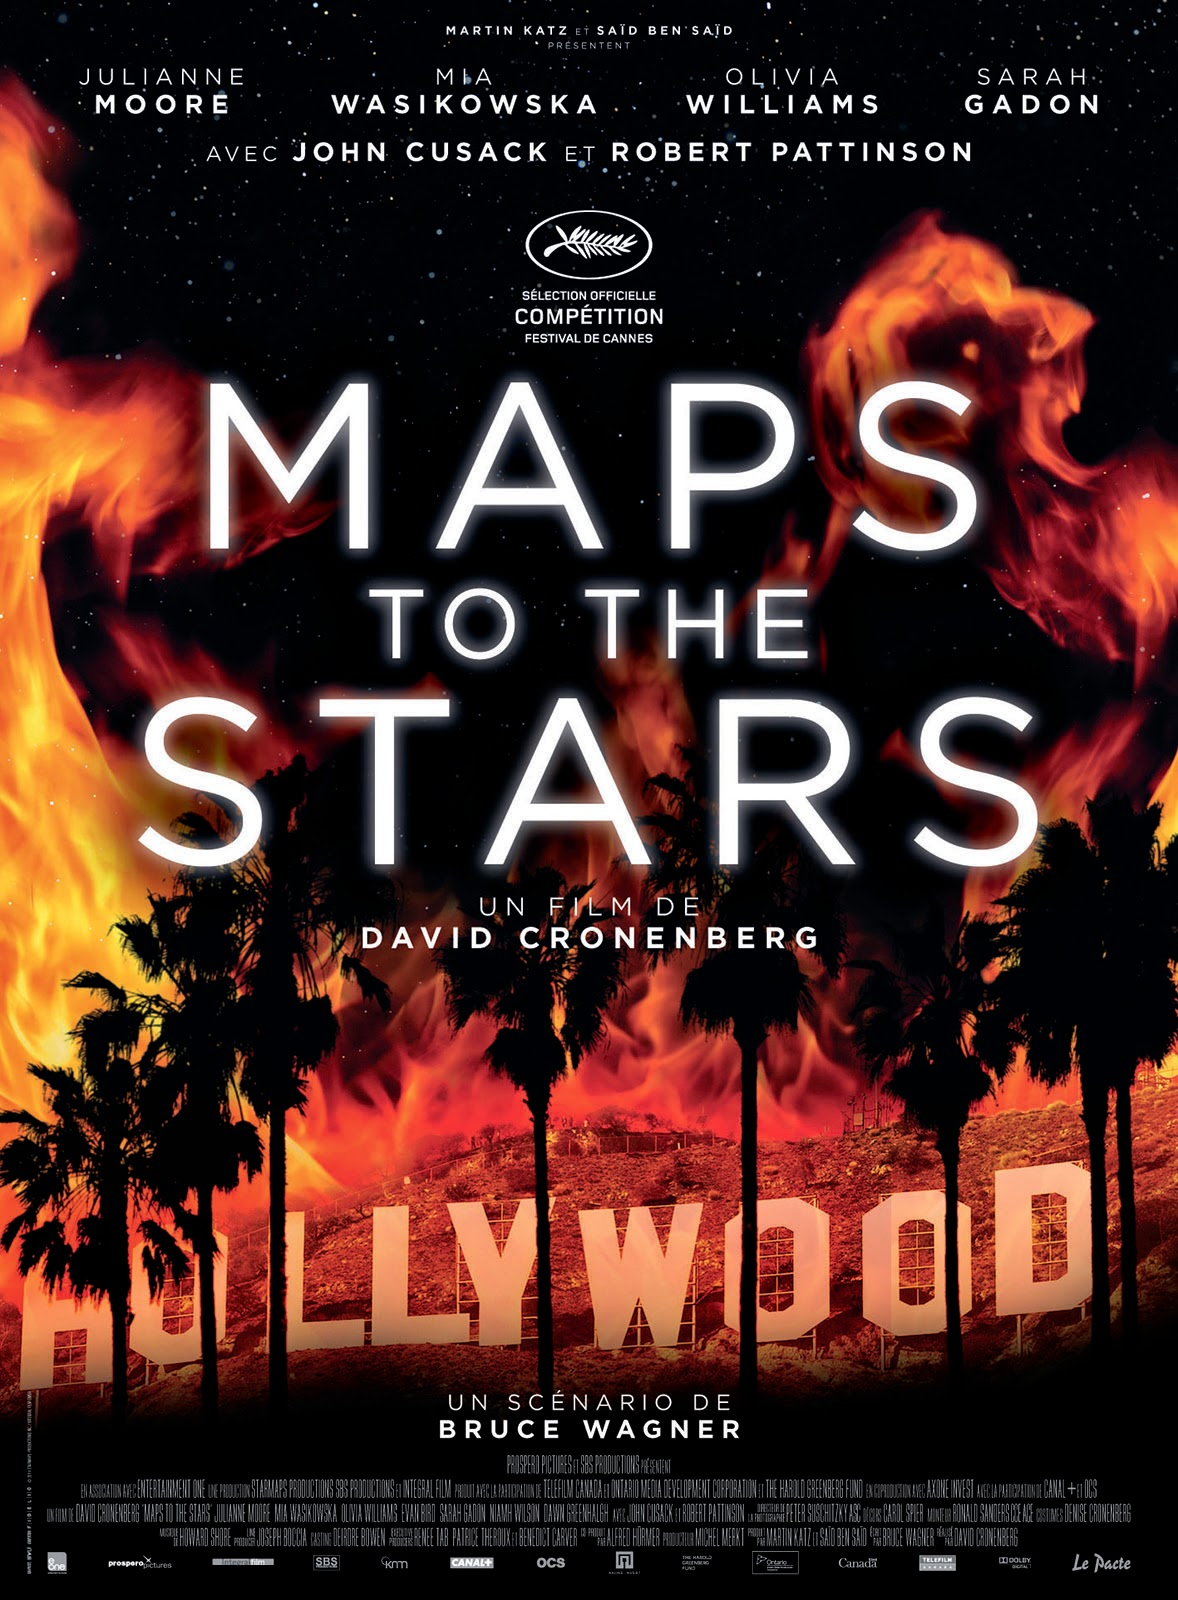 http://fuckingcinephiles.blogspot.fr/2014/05/critique-maps-to-stars.html